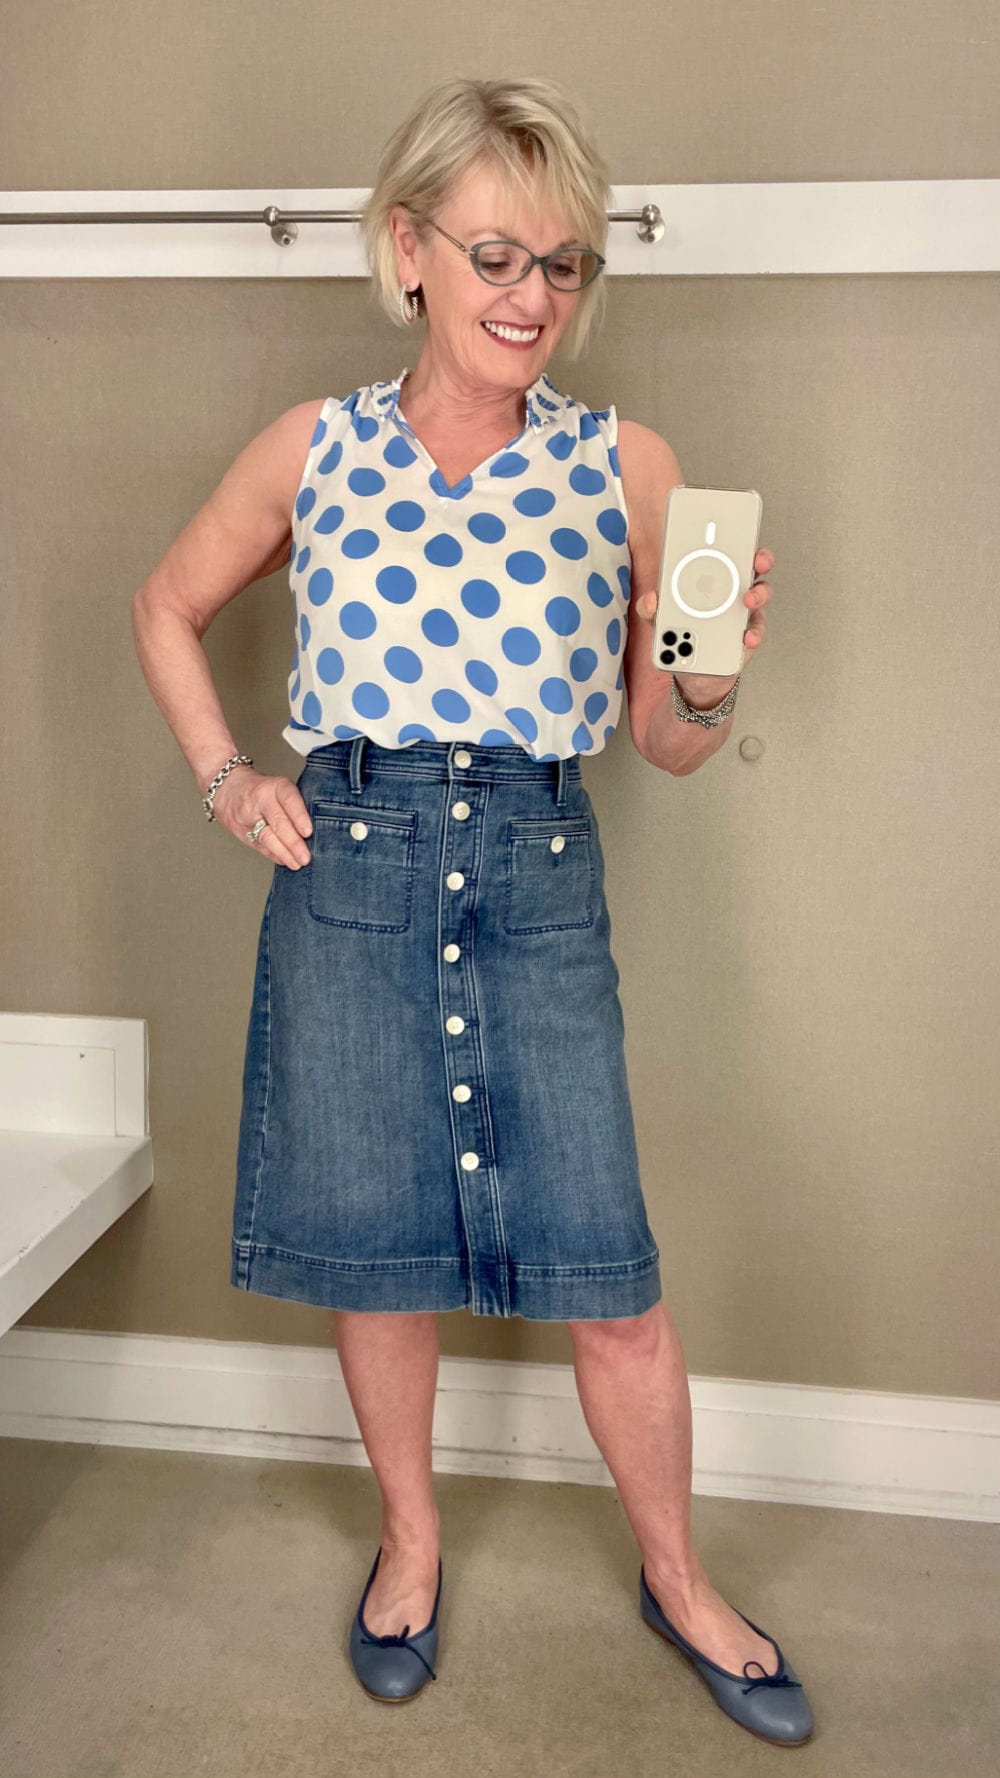 blonde woman wearoing polka dot blouse and denim shirt in dresssing room